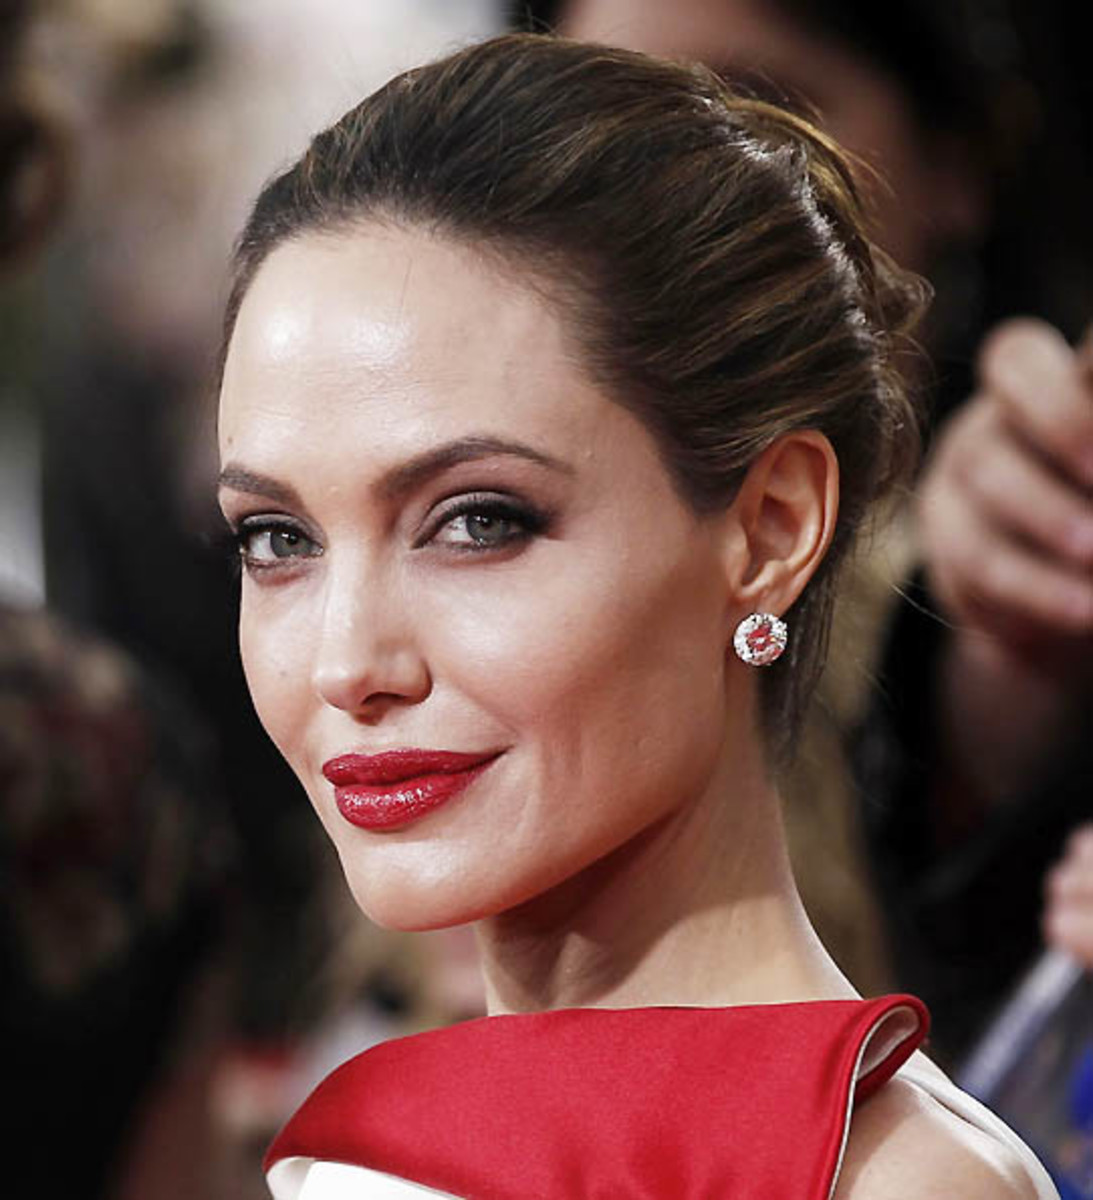 Angelina Jolie Golden Globes makeup